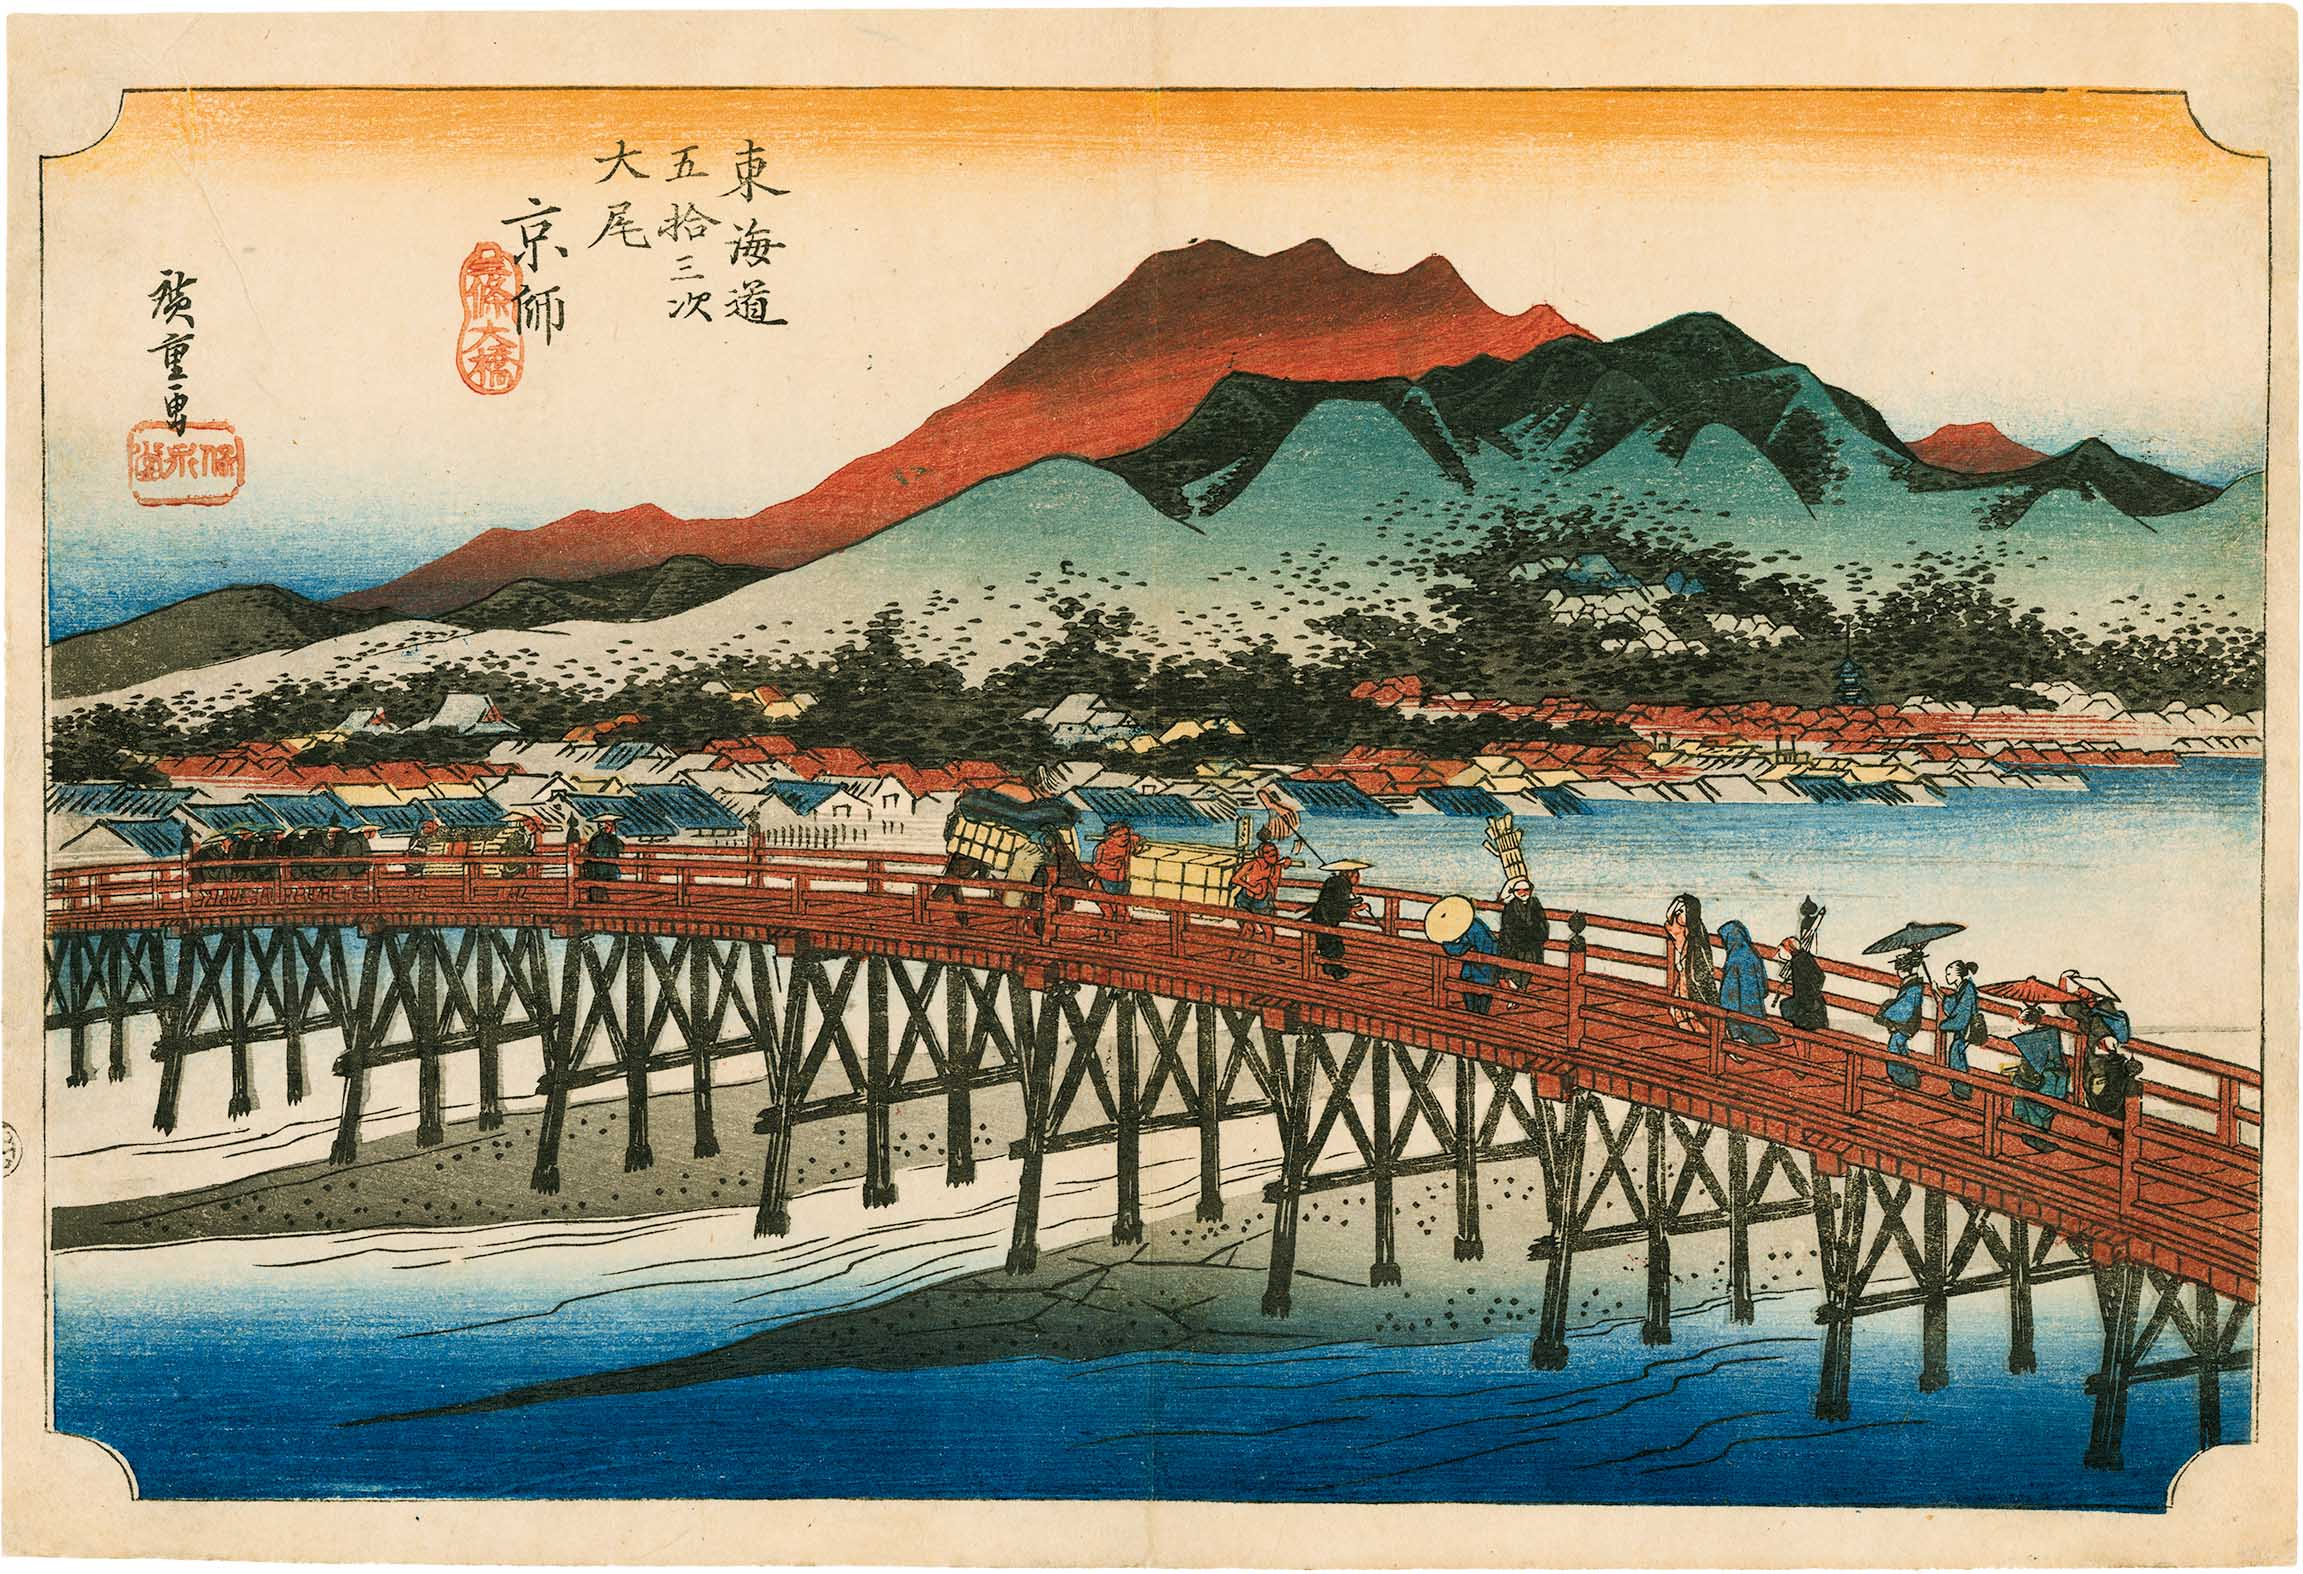 http://upload.wikimedia.org/wikipedia/commons/3/3b/Hiroshige55_kyoto.jpg